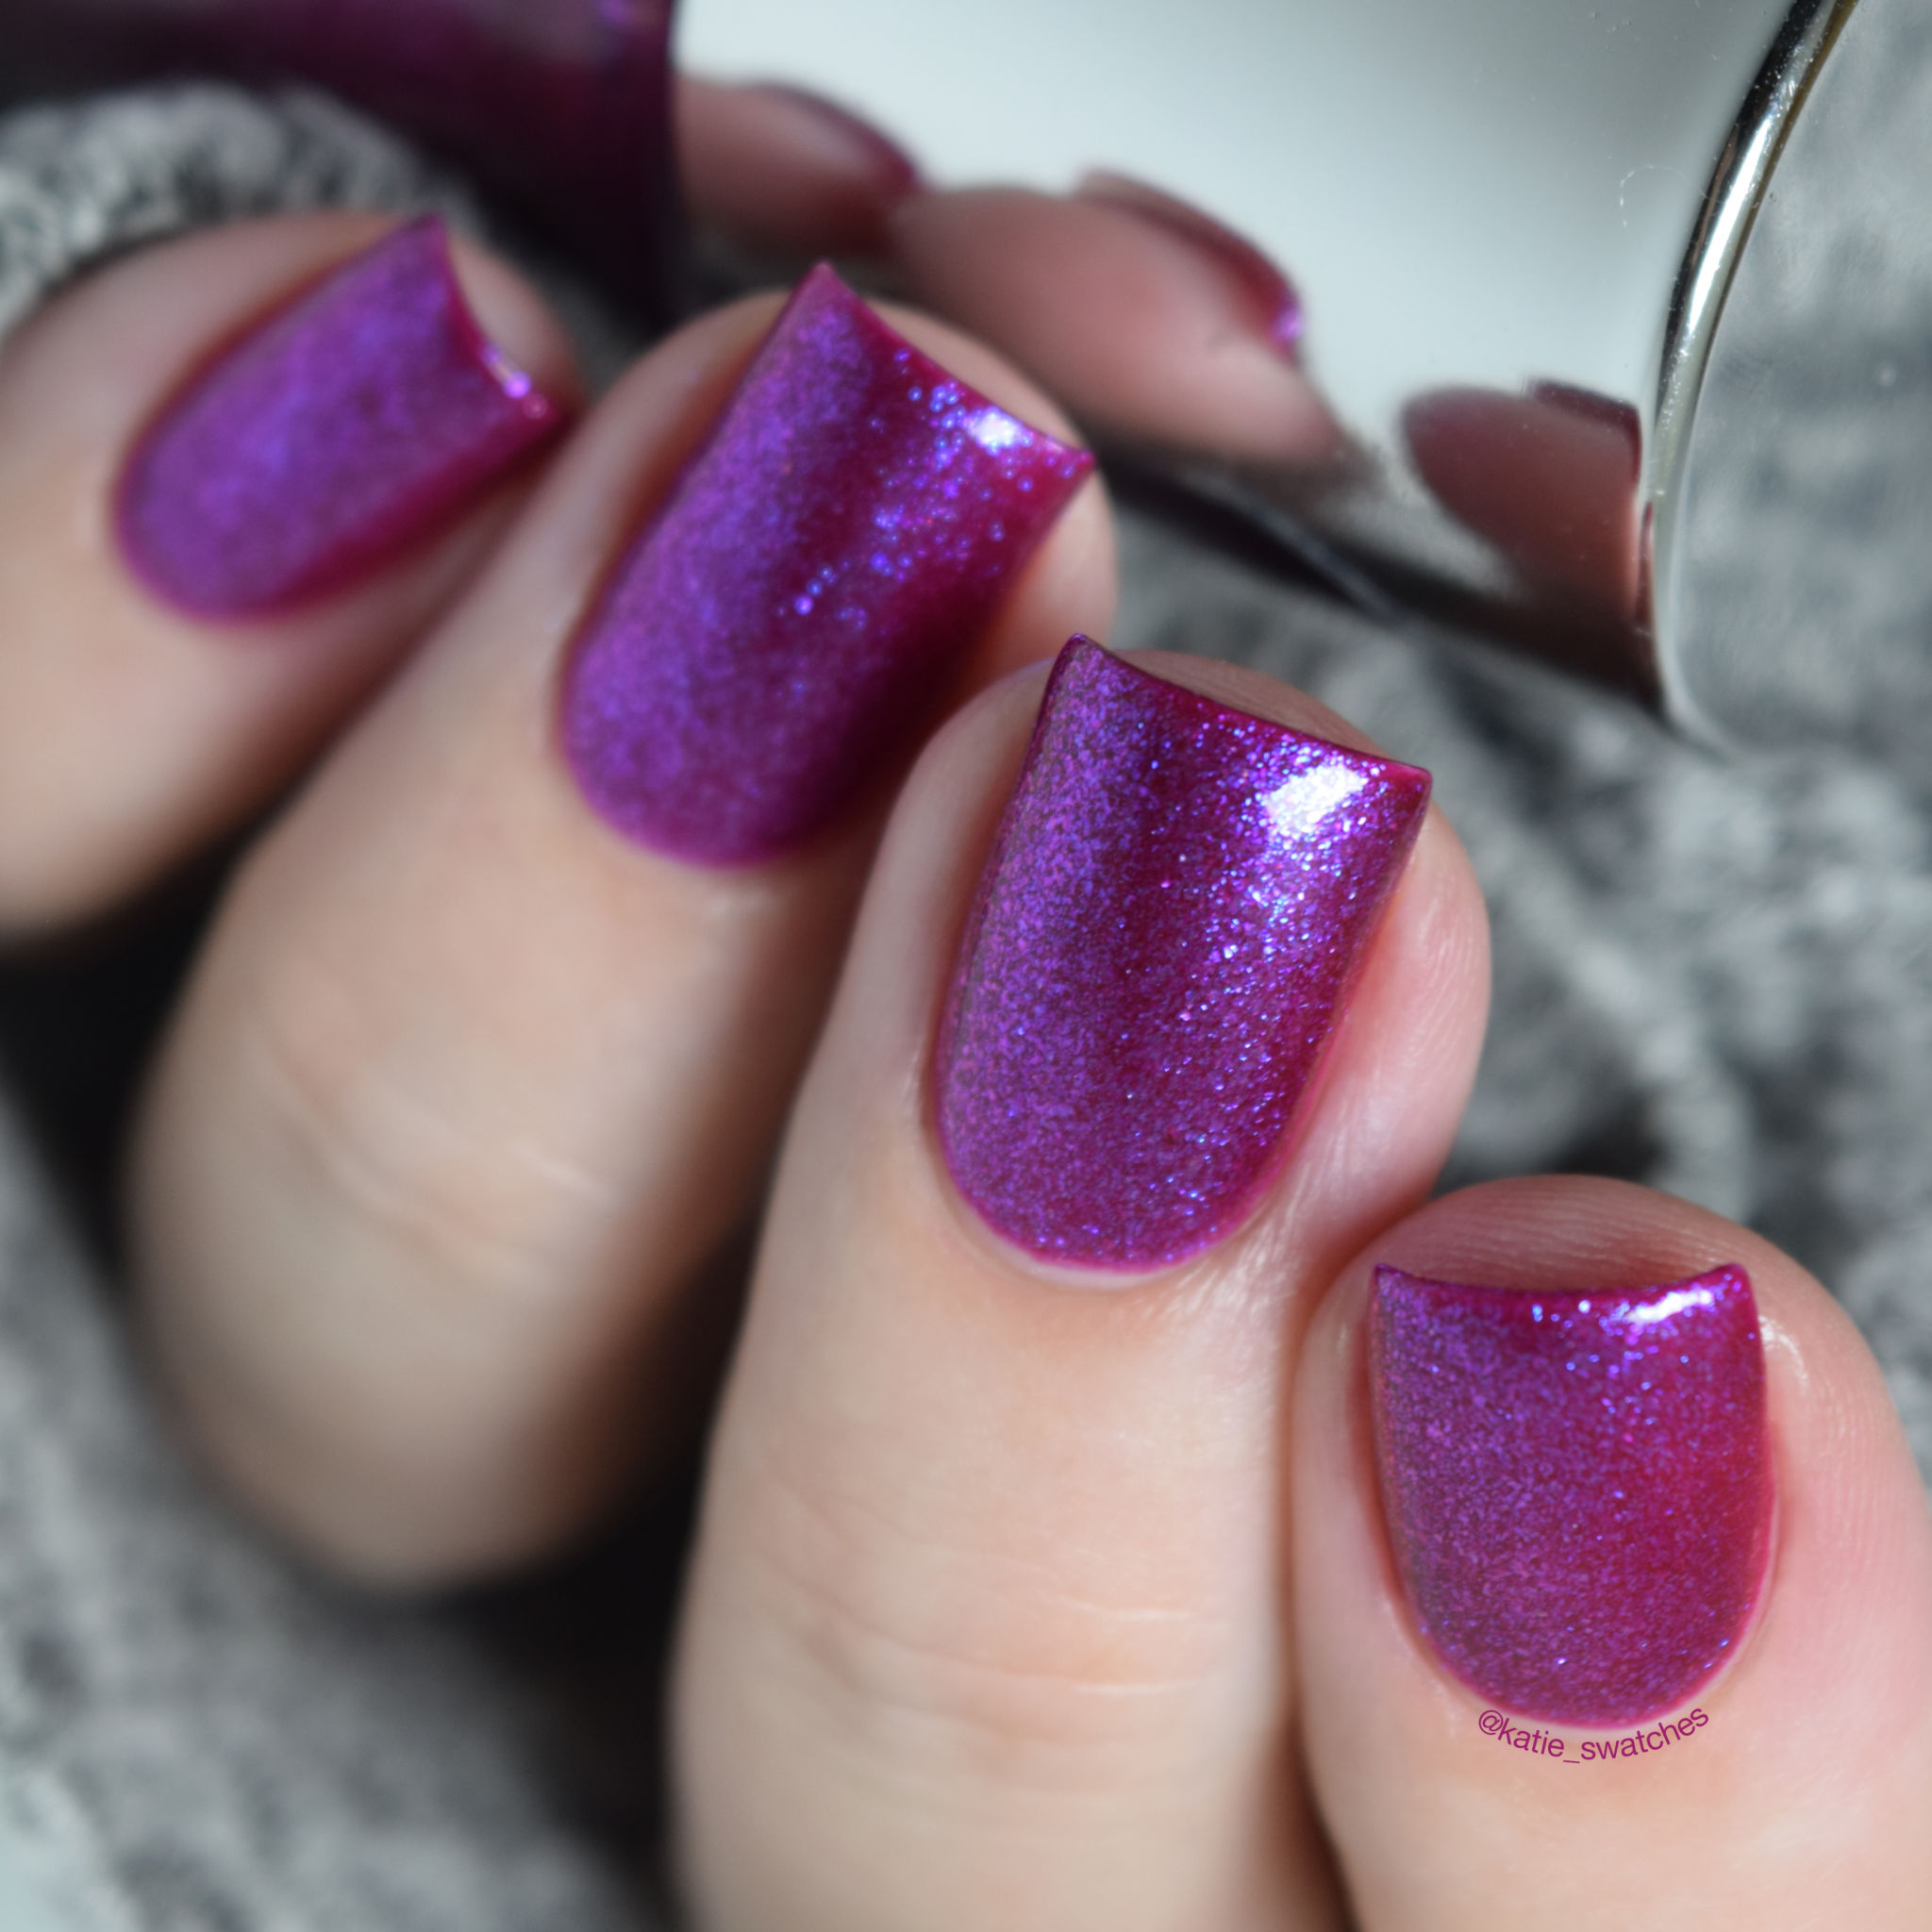 Essence - Mermaid's Secret nail polish from the Aquatix Collection